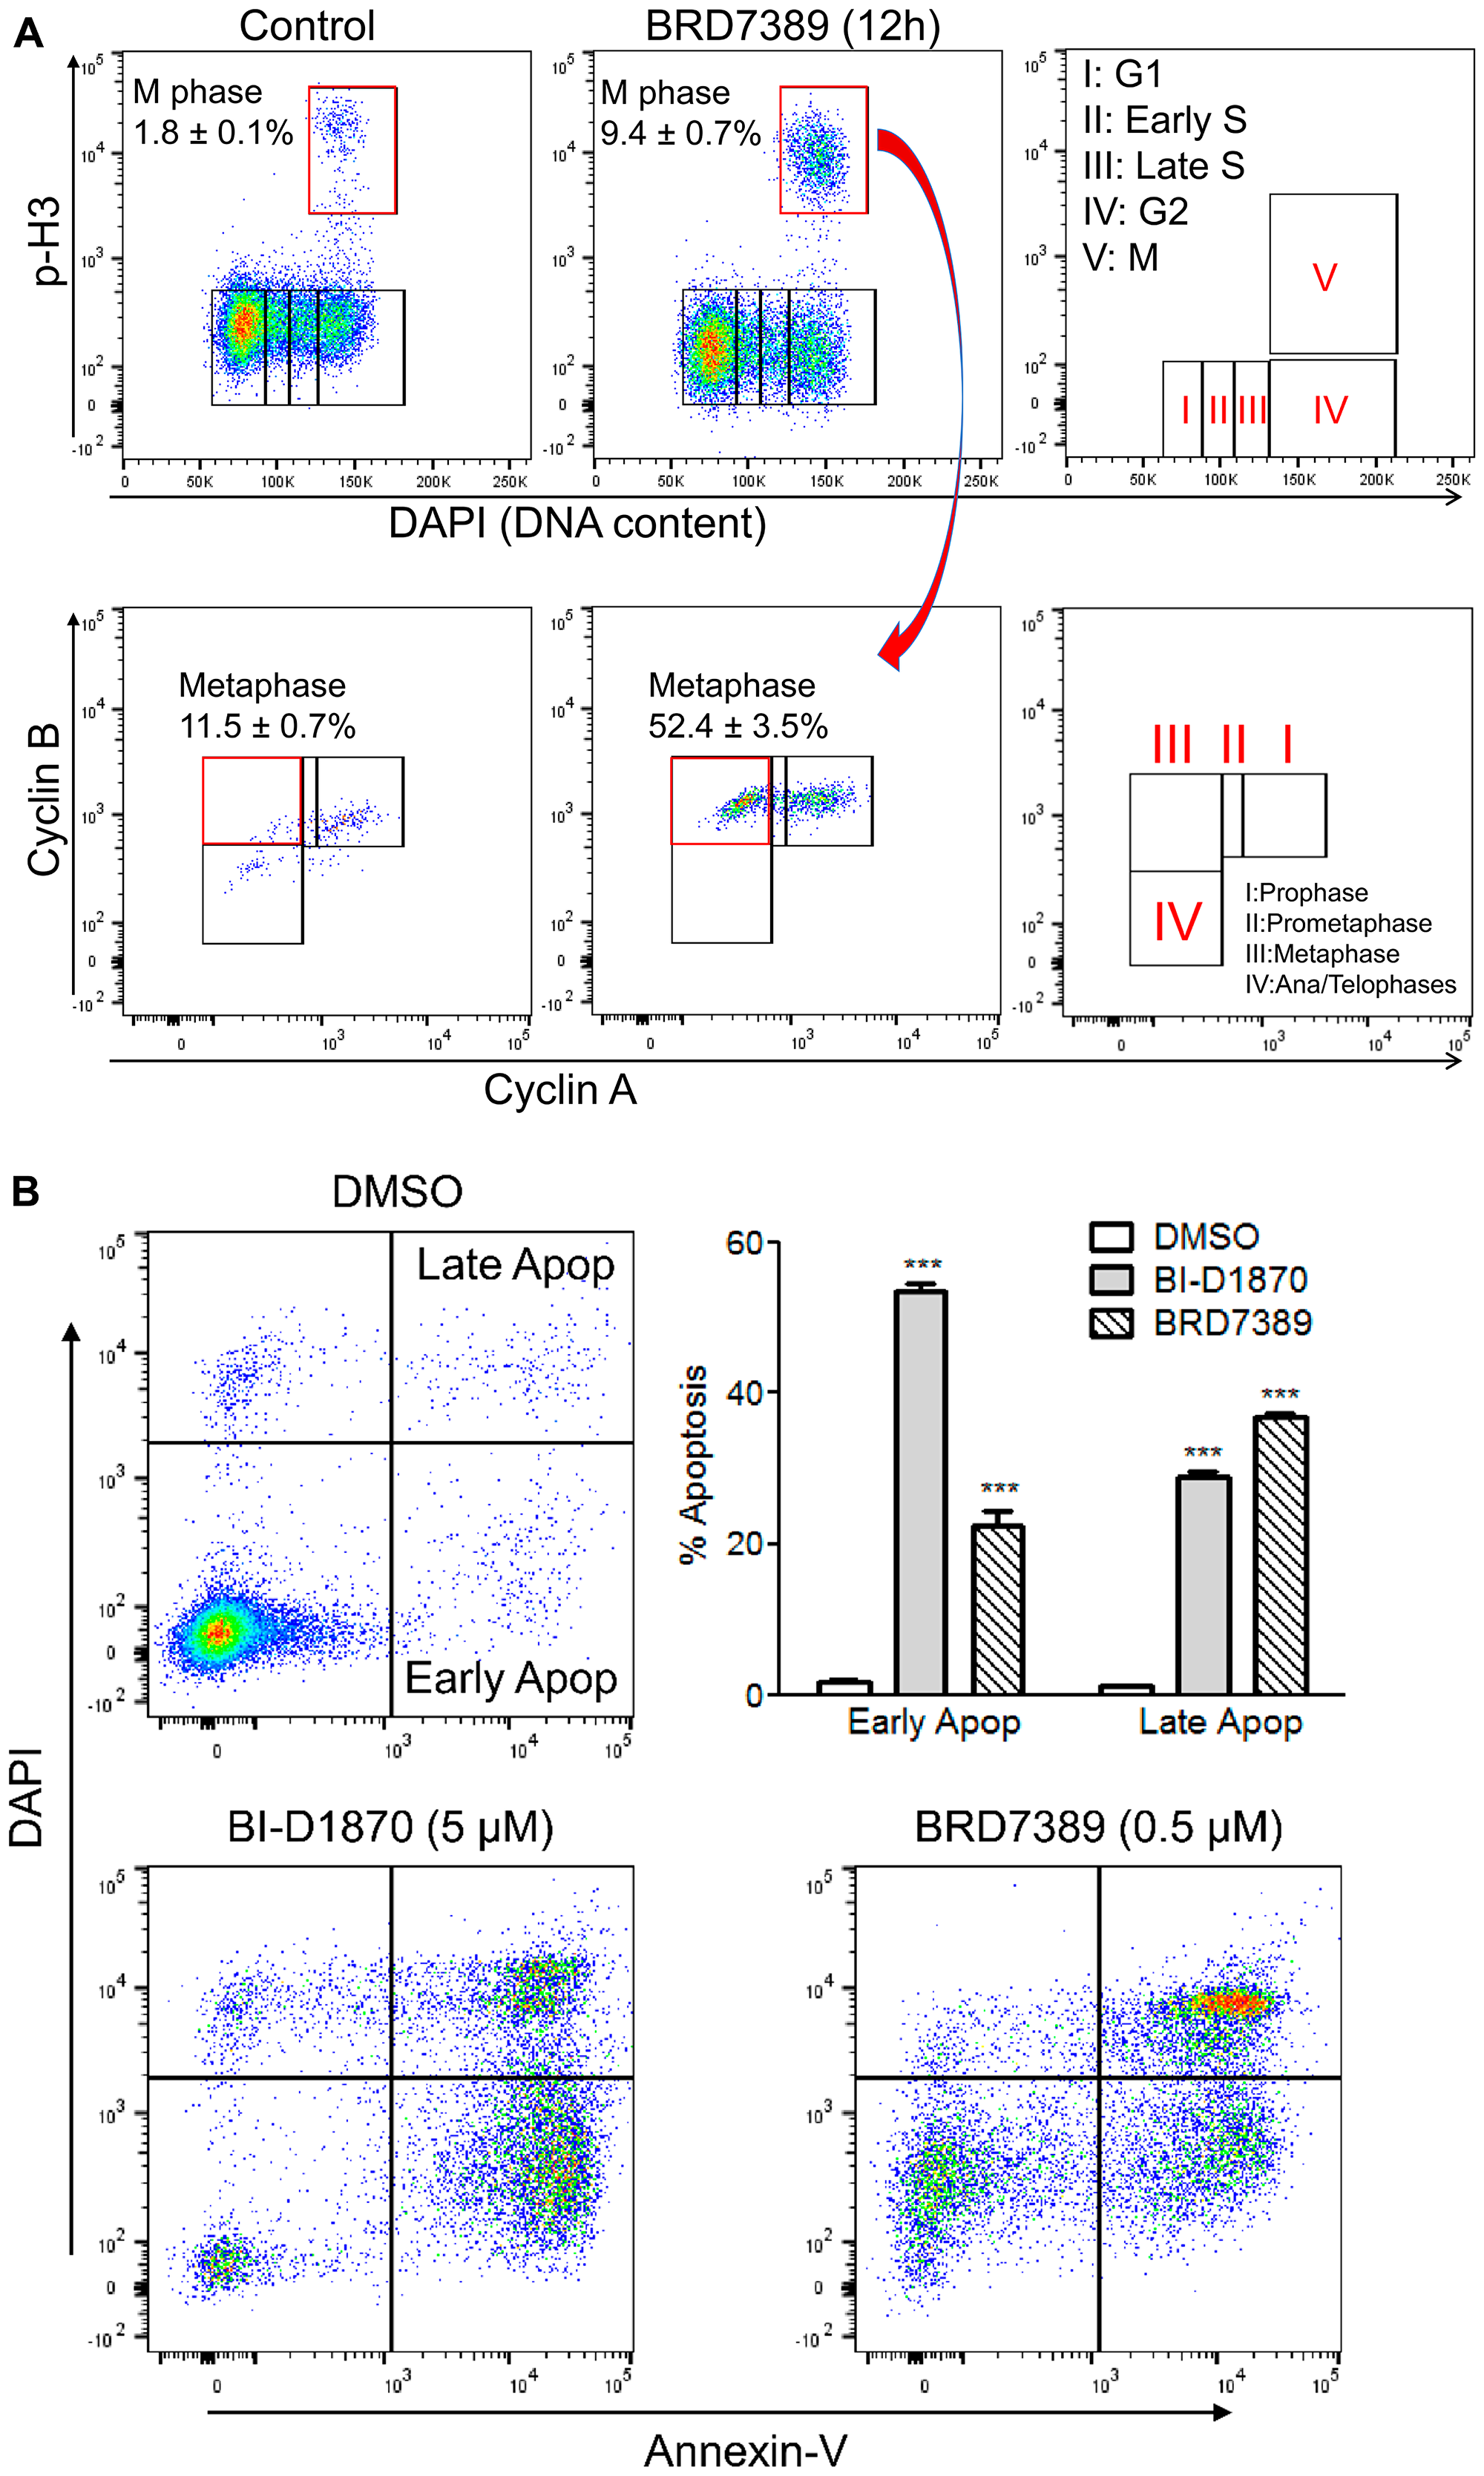 BRD7389 treatment induces metaphase arrest and apoptosis in HL60 cells.